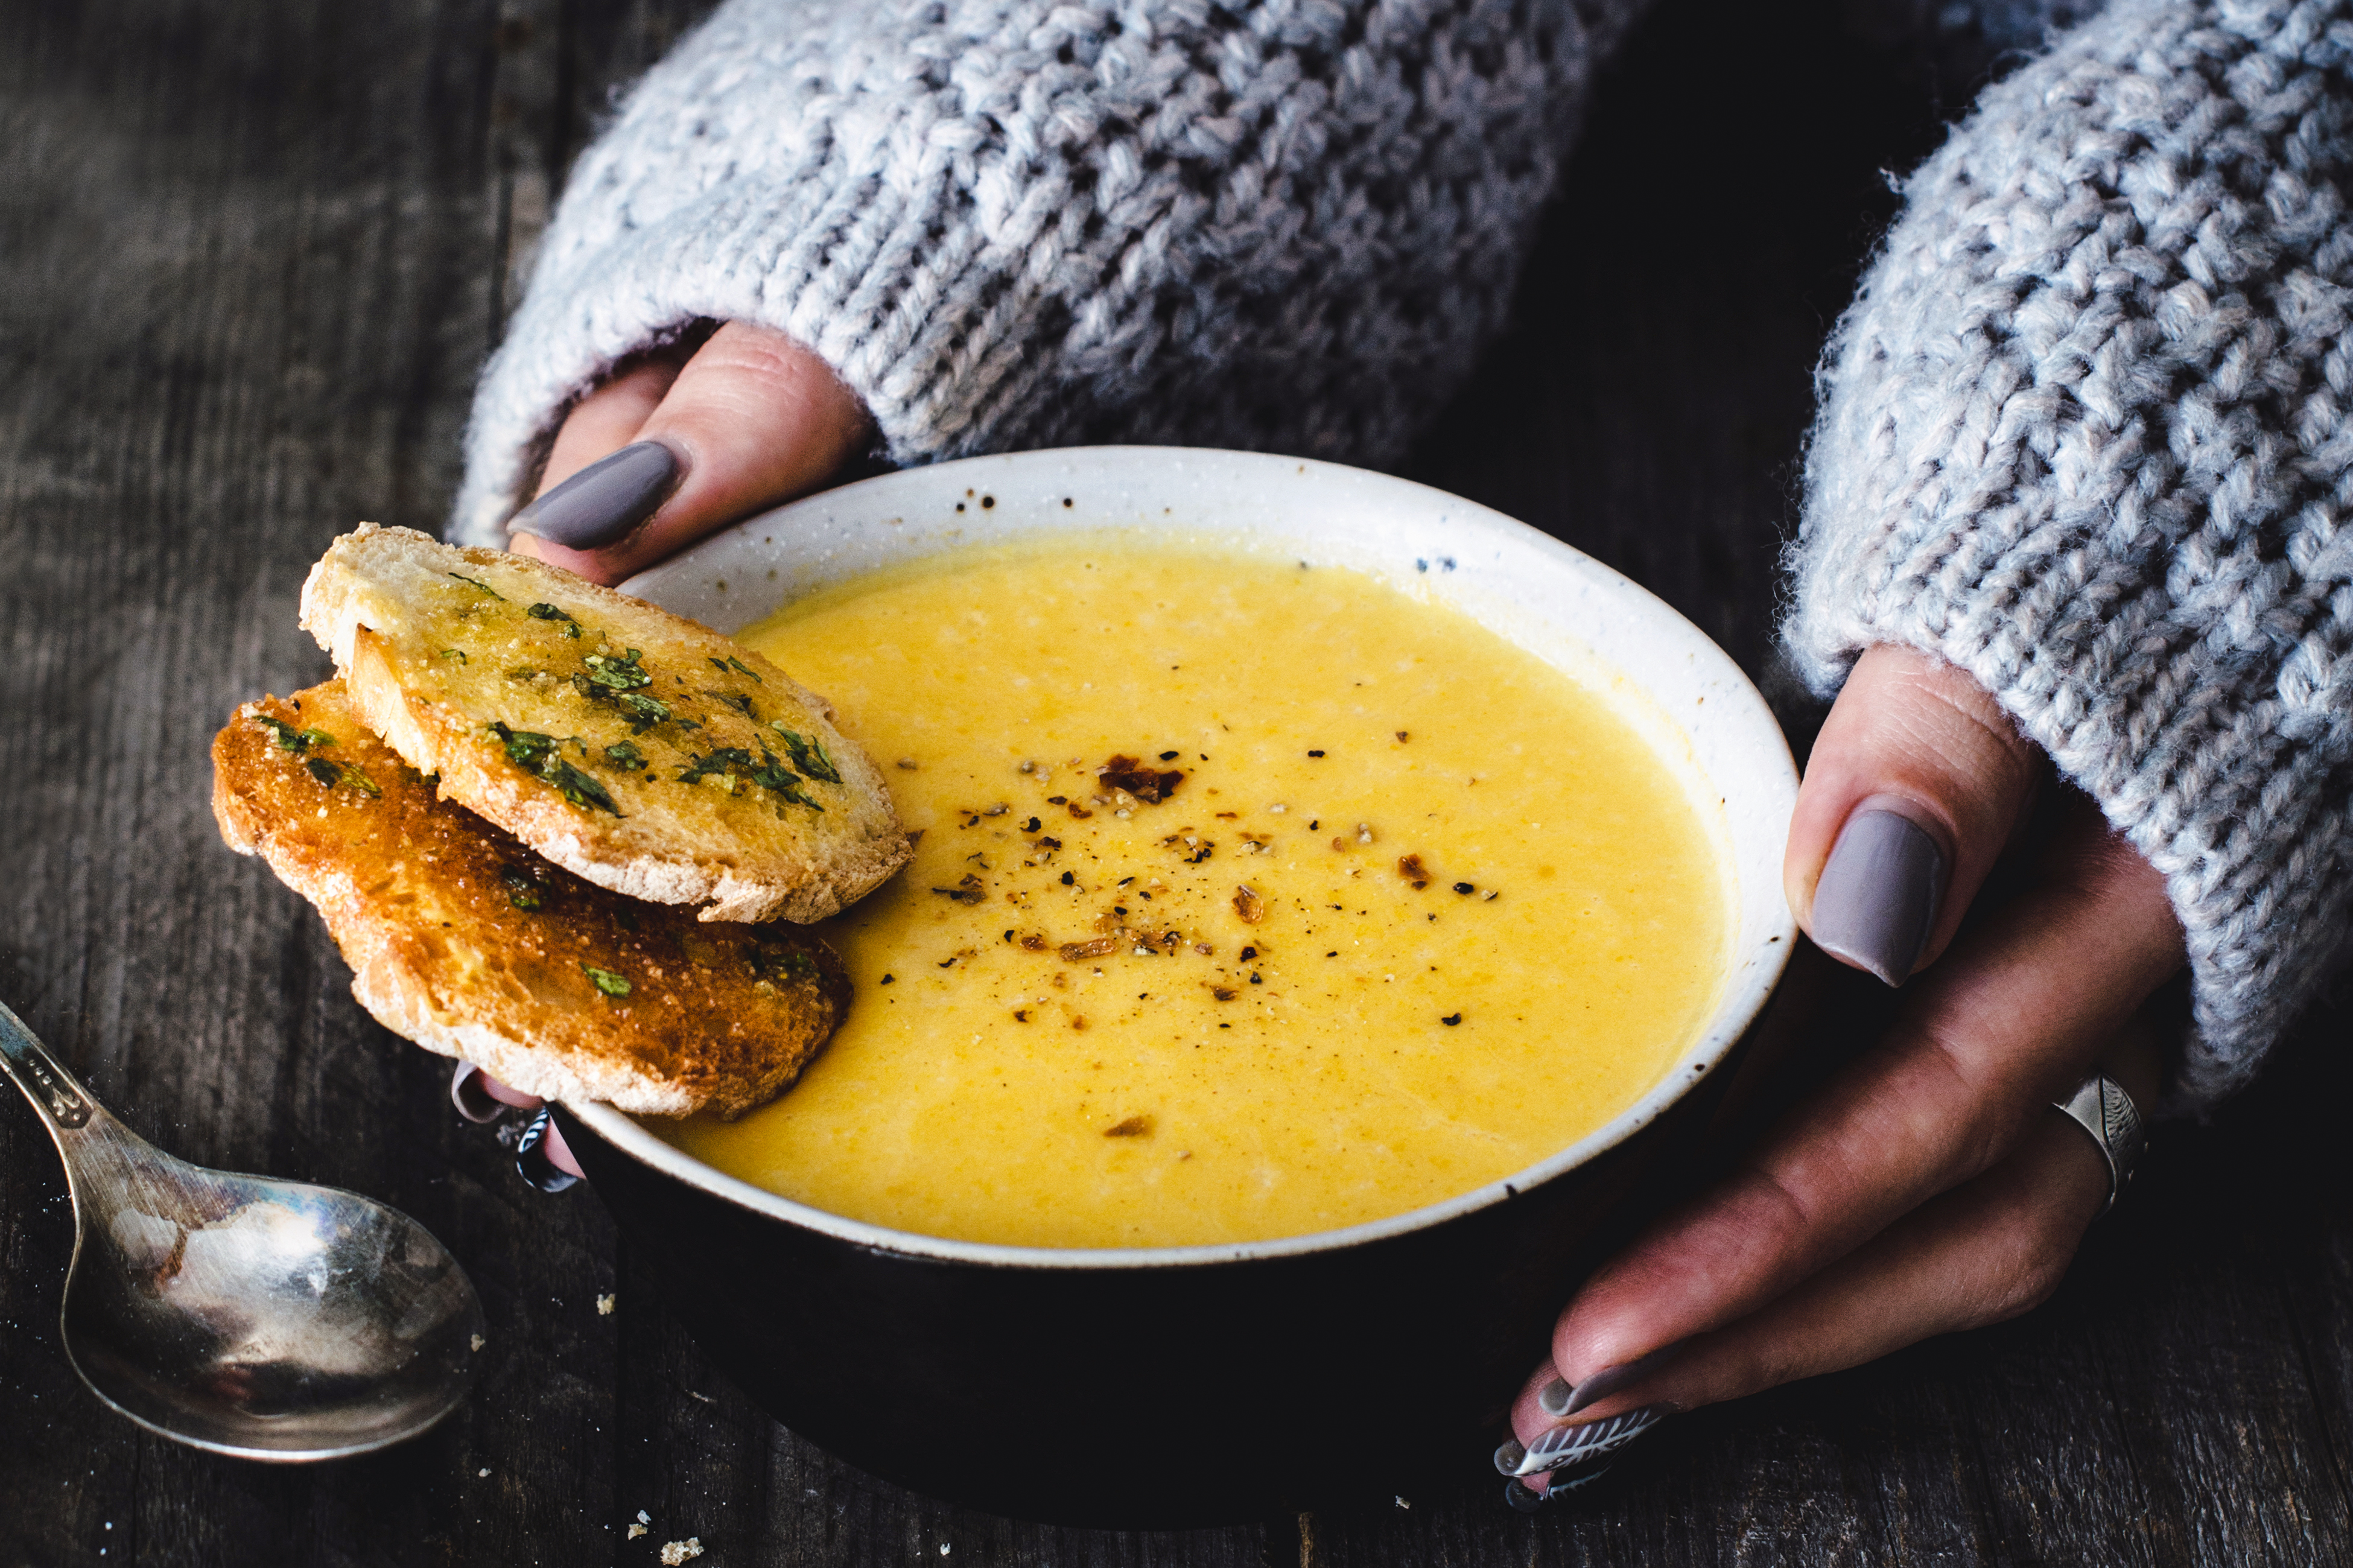 Soup recipes to keep the winter chill at bay